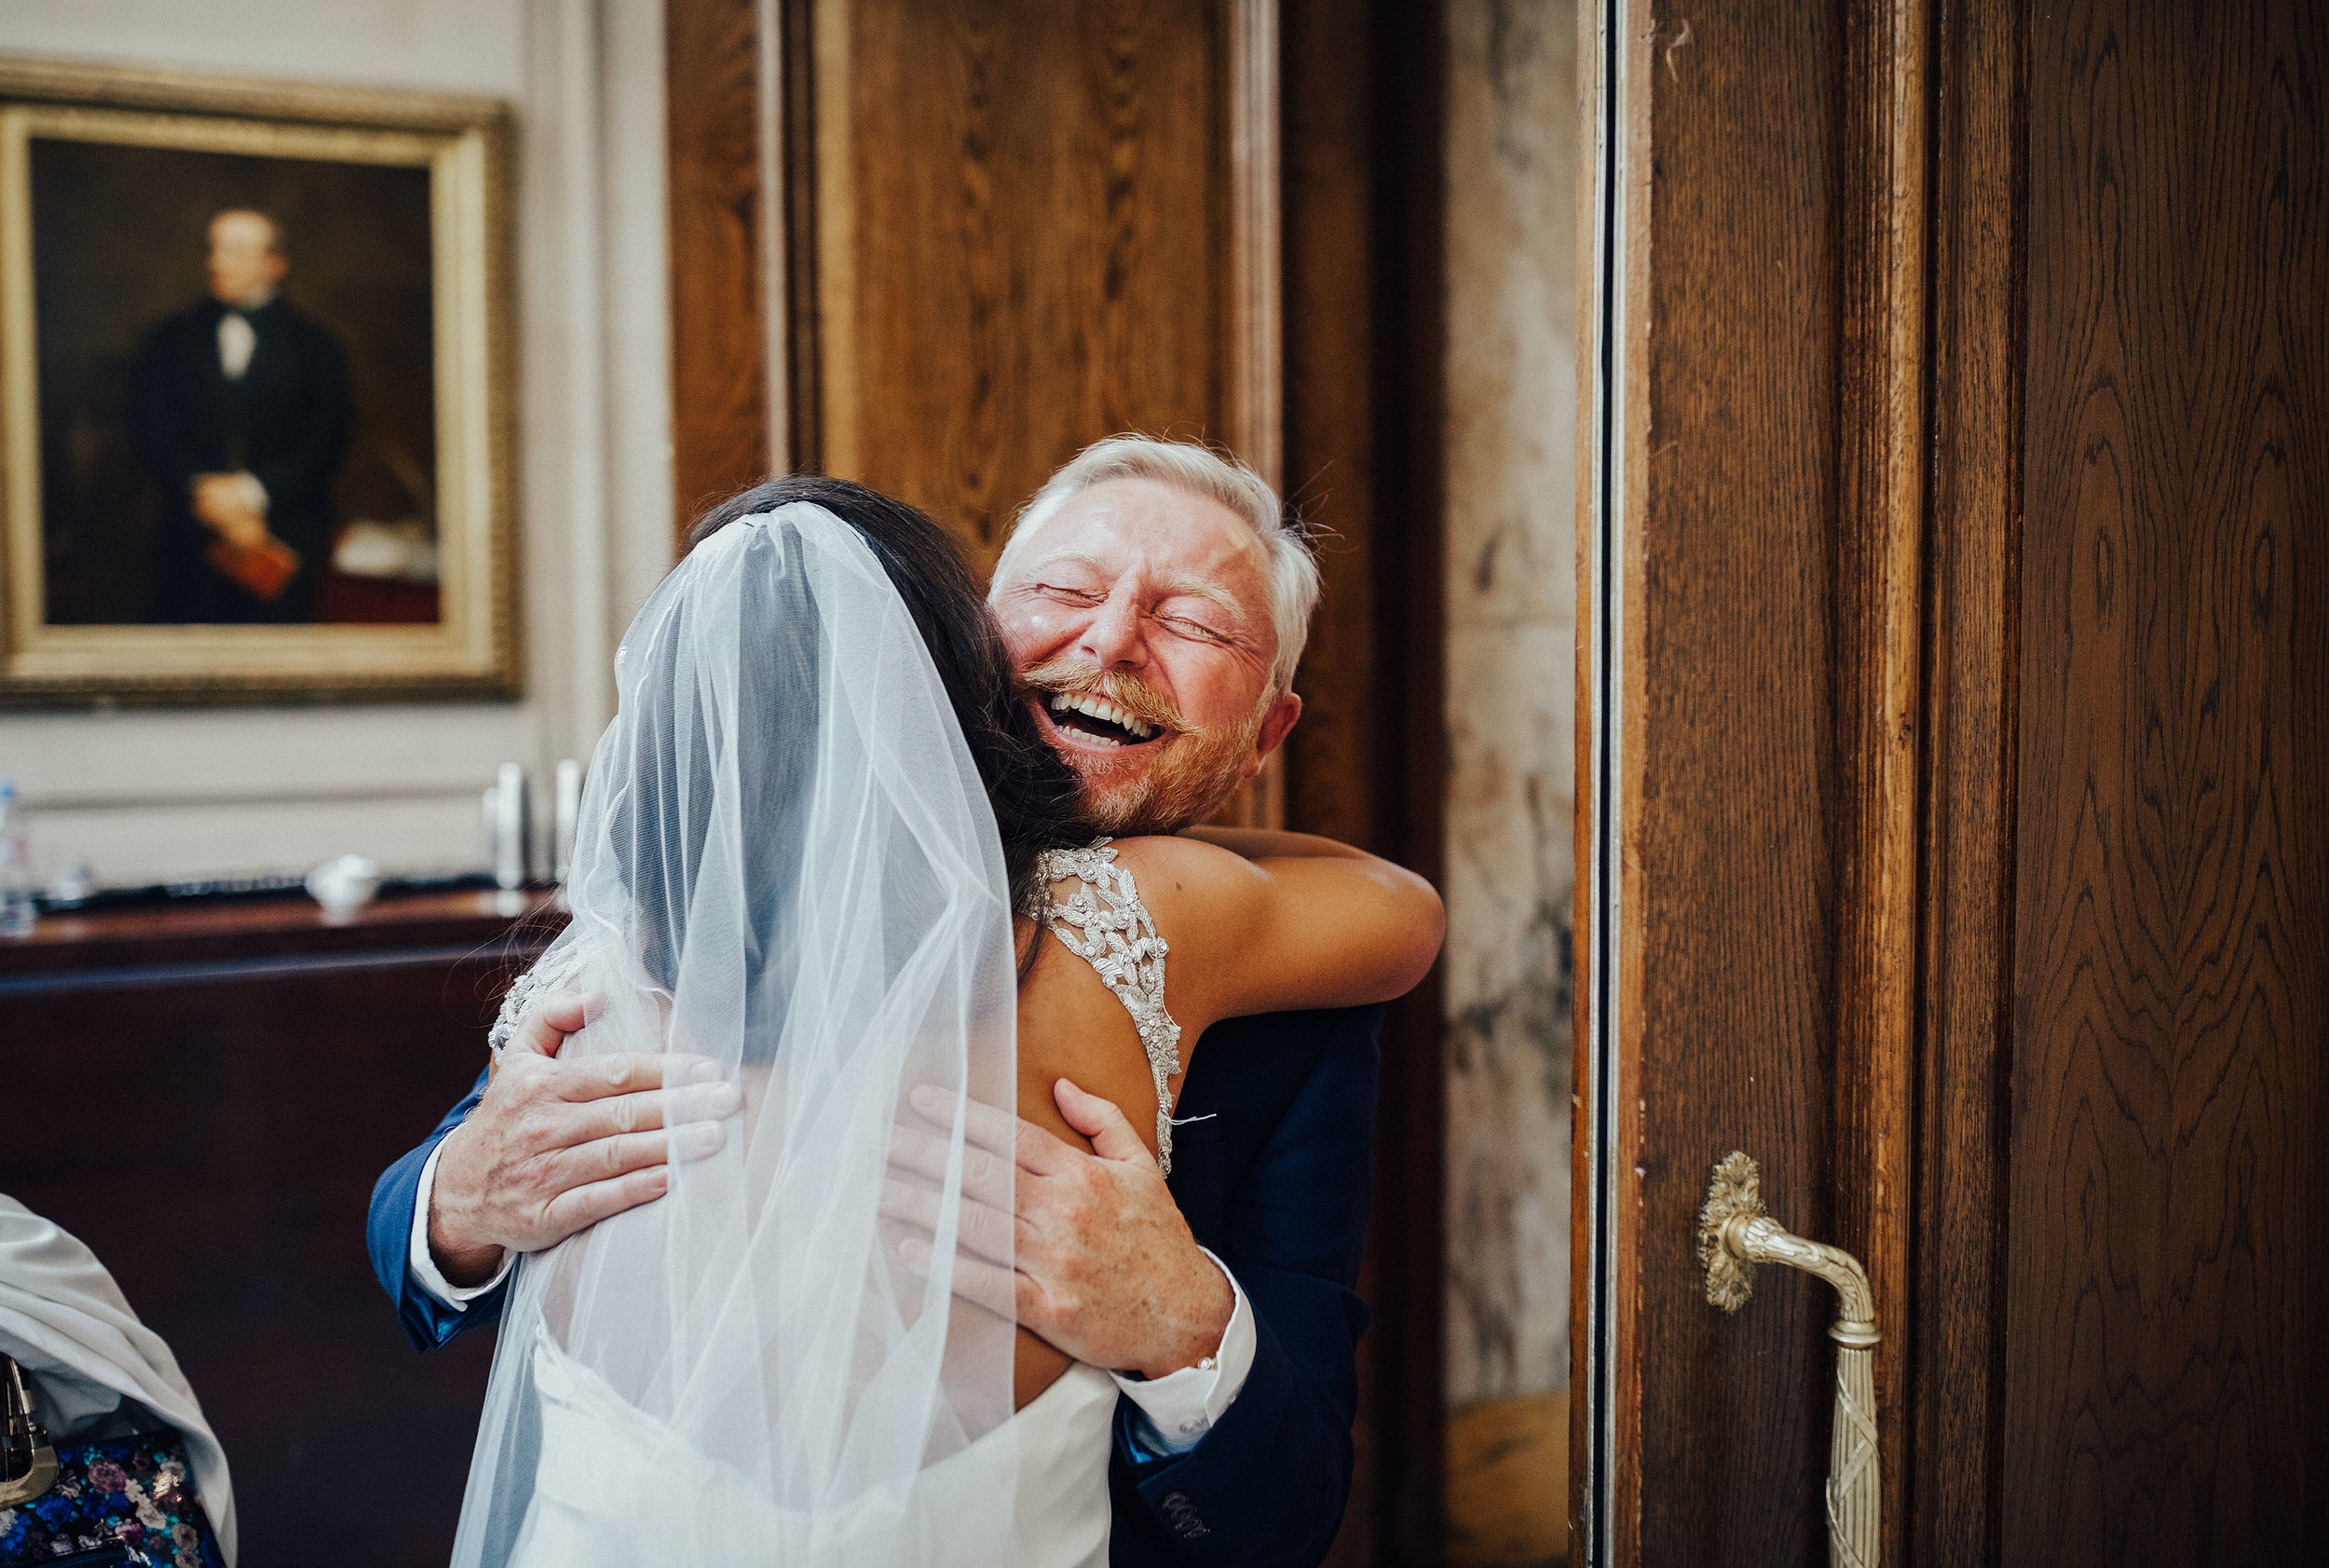 PJ_PHILLIPS_PHOTOGRAPHY_2018_SCOTLAND_WEDDING_PHOTOOGRAPHER_164.jpg